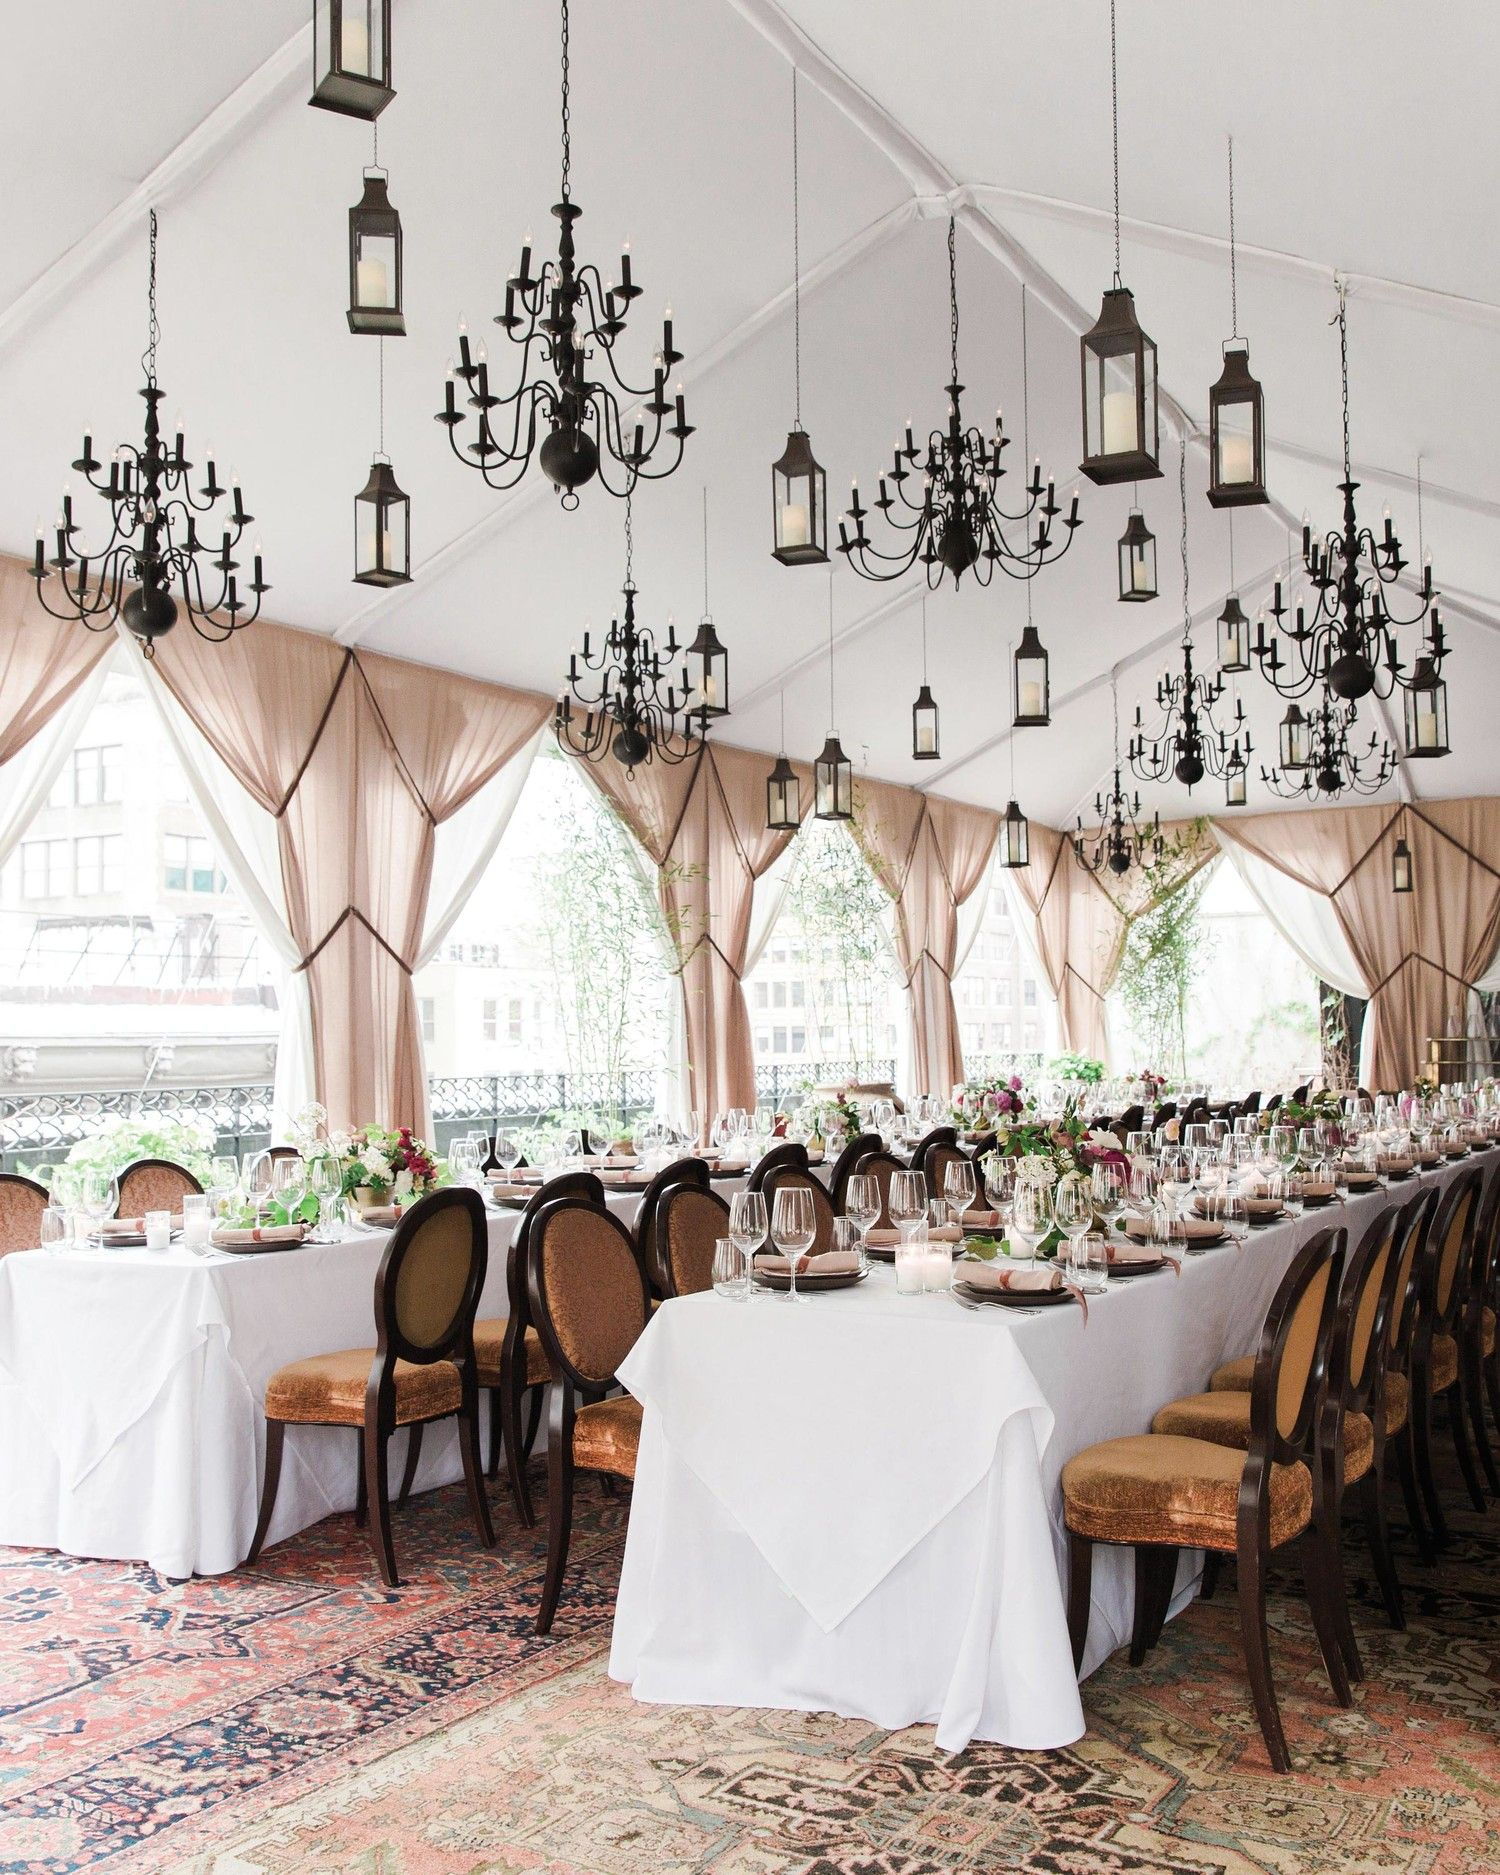 28 Tent Decorating Ideas That Will Upgrade Your Wedding Reception With Images Tent Decorations Rooftop Wedding Wedding Reception Rooms